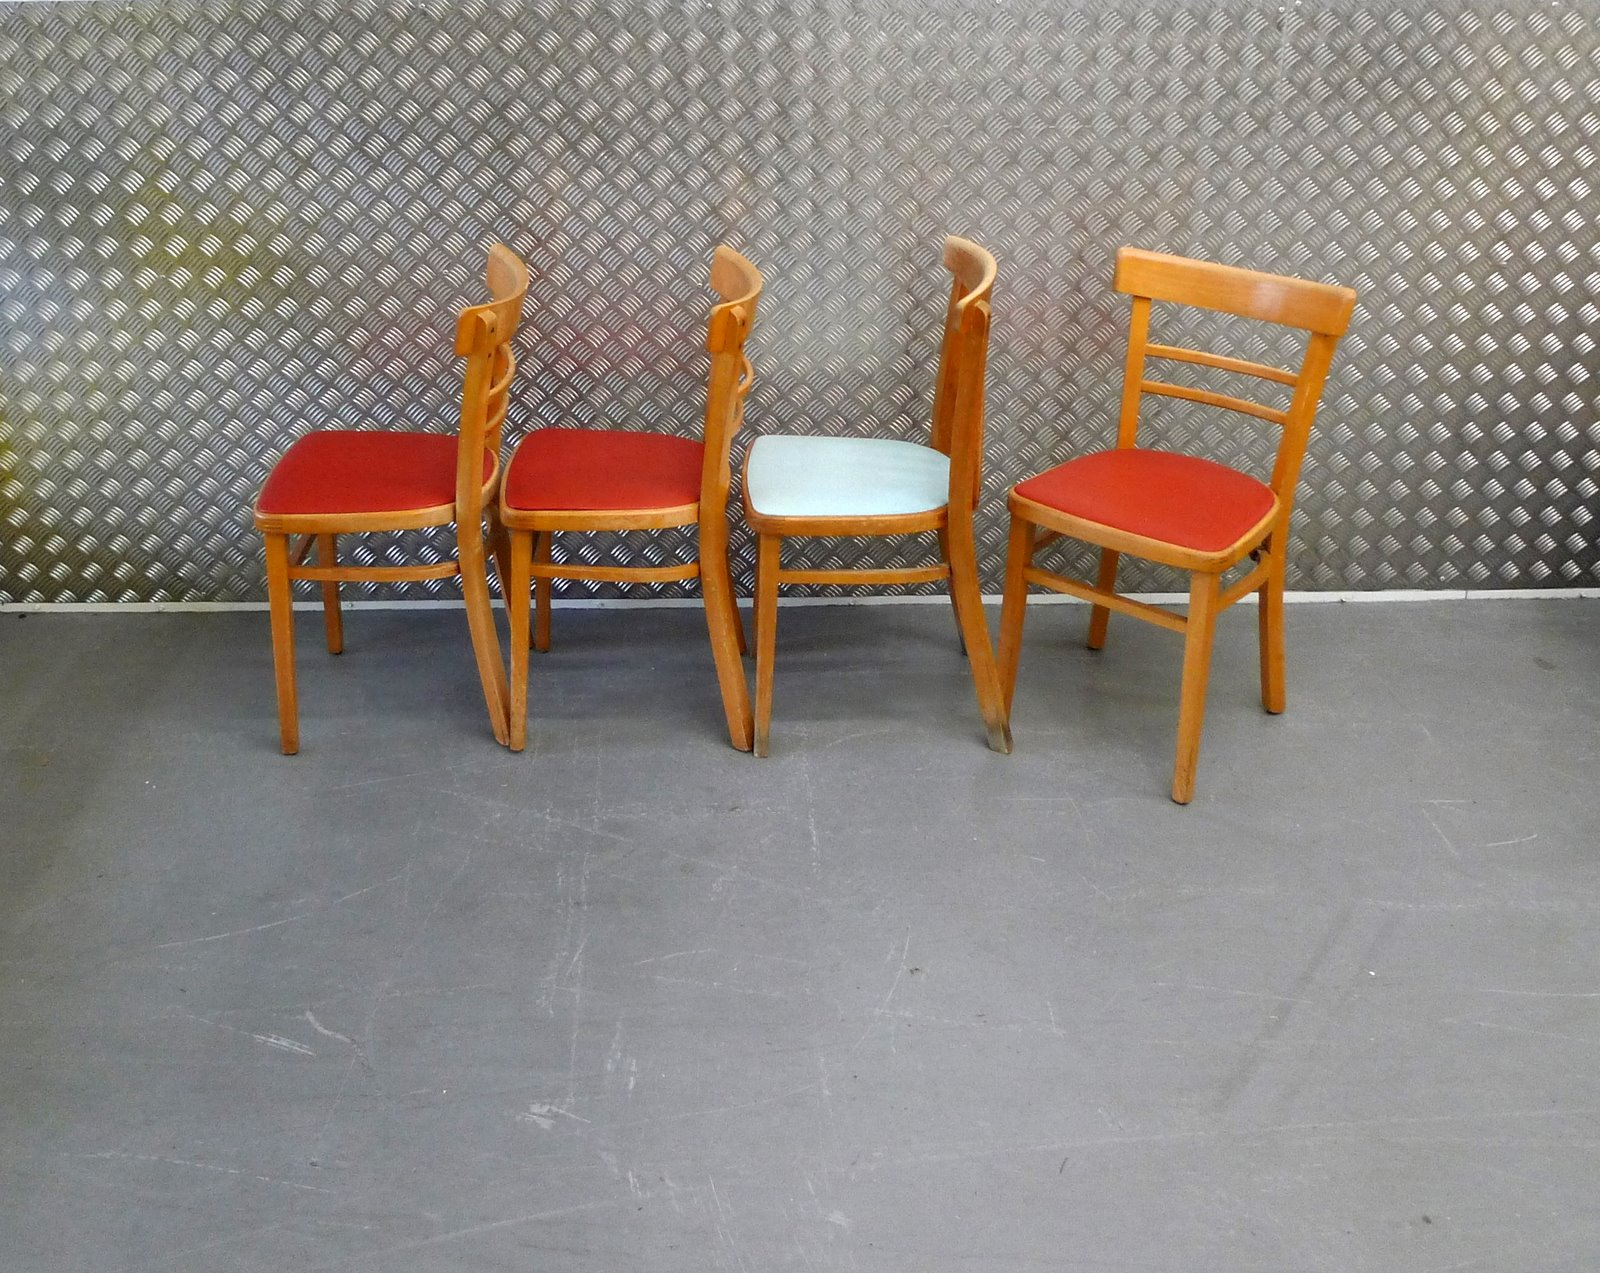 Some Sweet Vintage Old School Chairs From The 50s